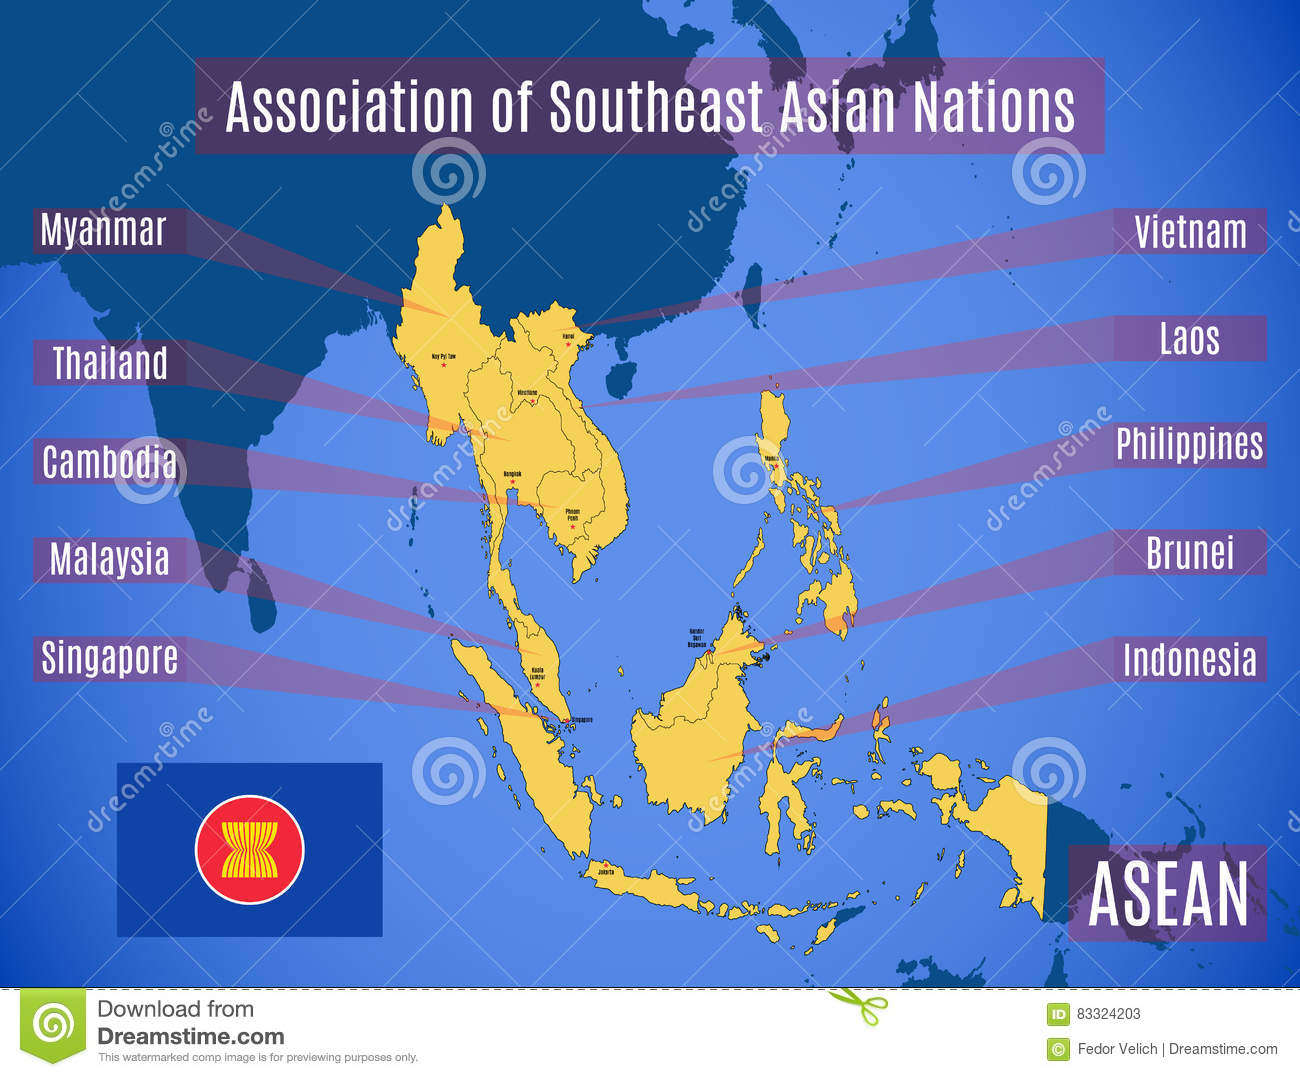 Association of southeast asian nations members think